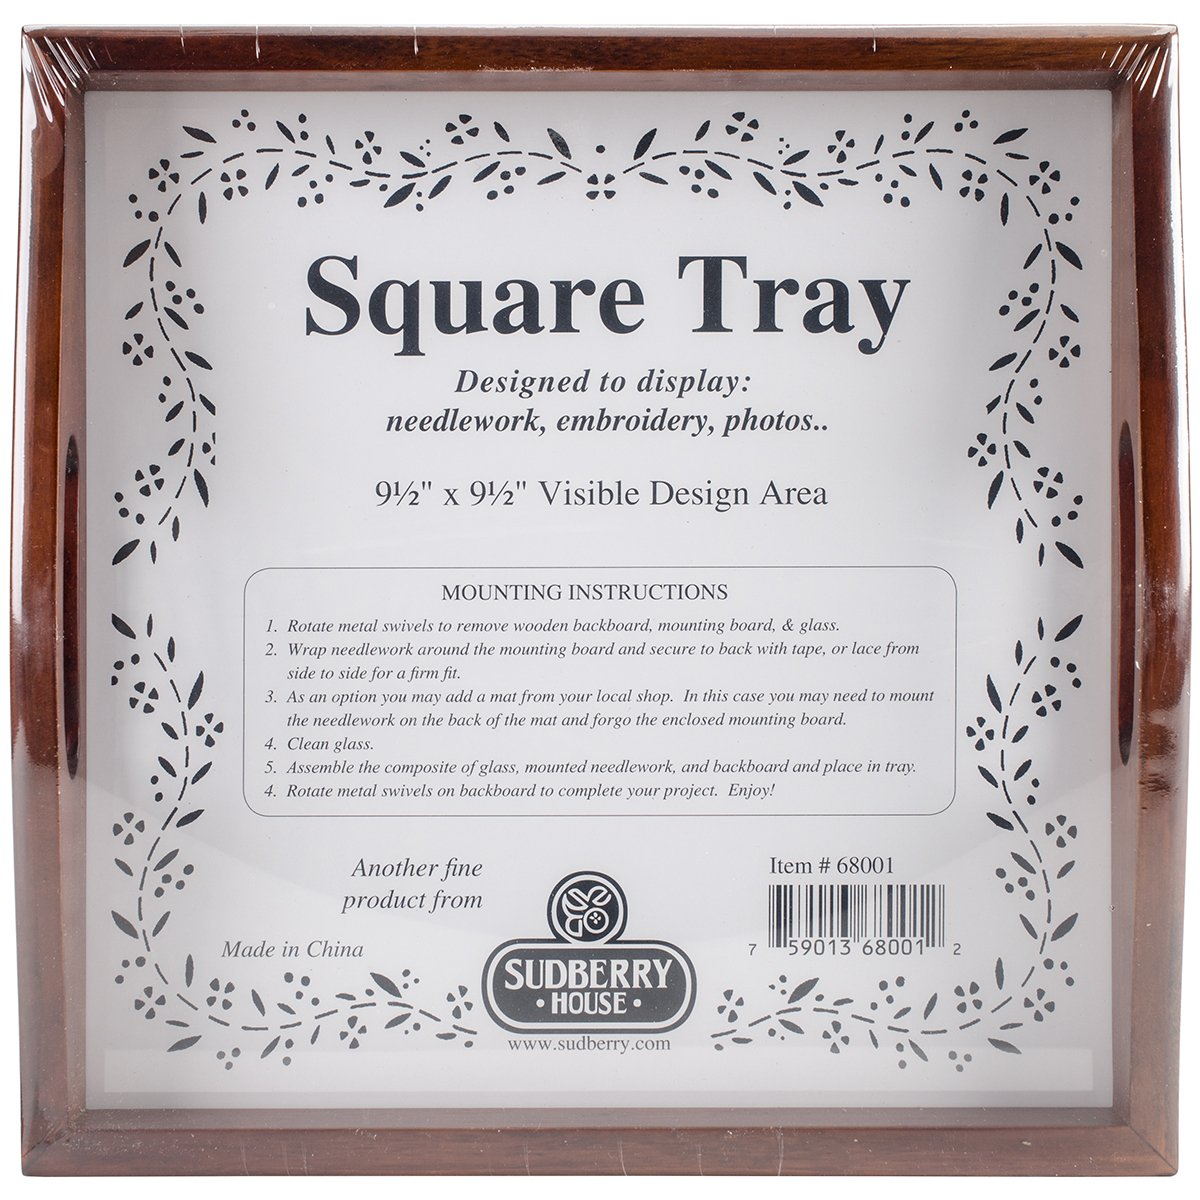 Sudberry House 68001 Small Square Tray, 10 x 10, Mahogany by Sudberry House